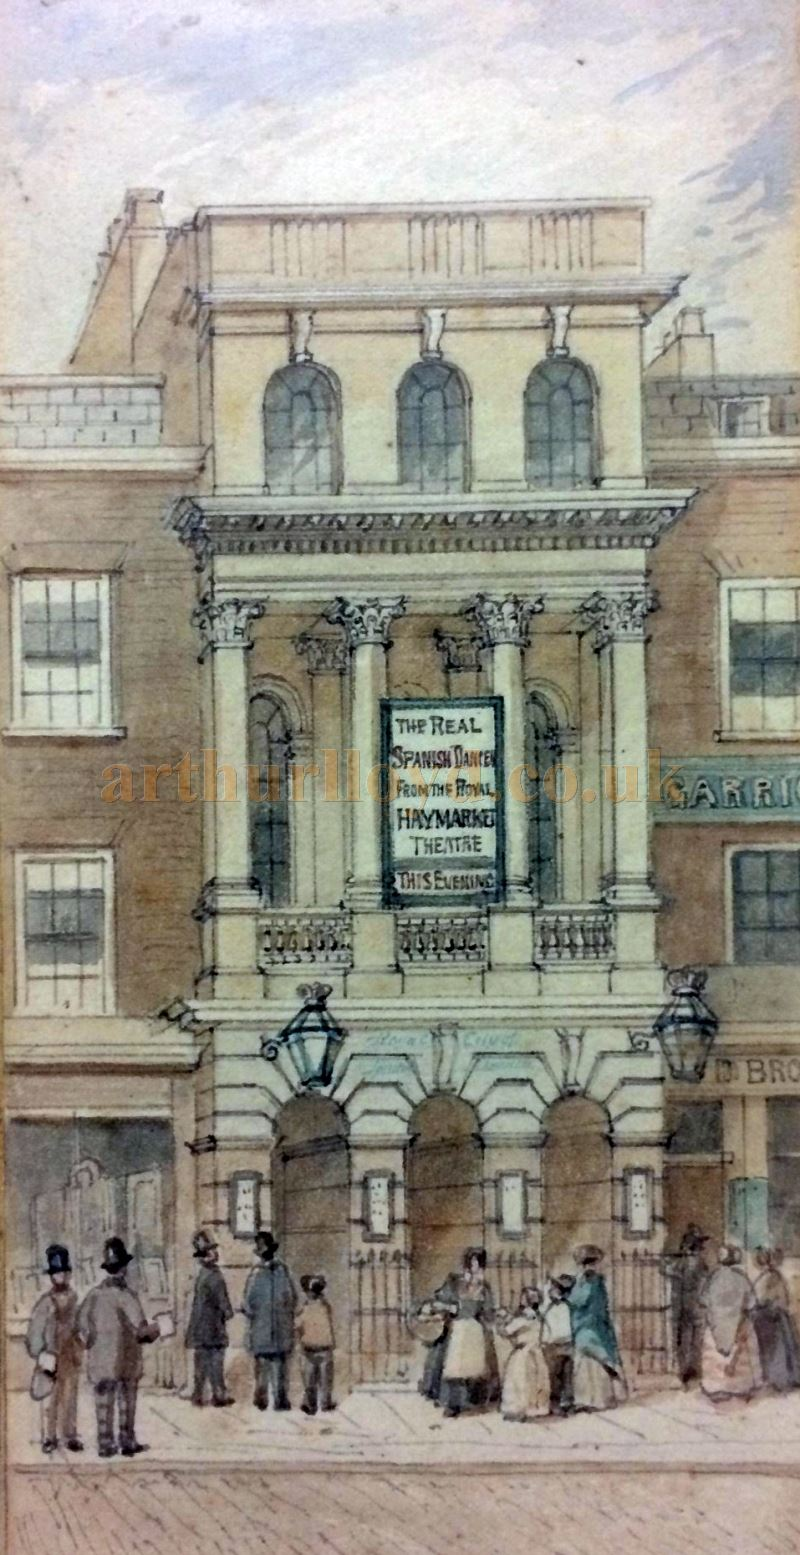 A very rare watercolour depicting the Royal City of London Theatre by the 19th century artist J. Findlay - Courtesy John Ramm.